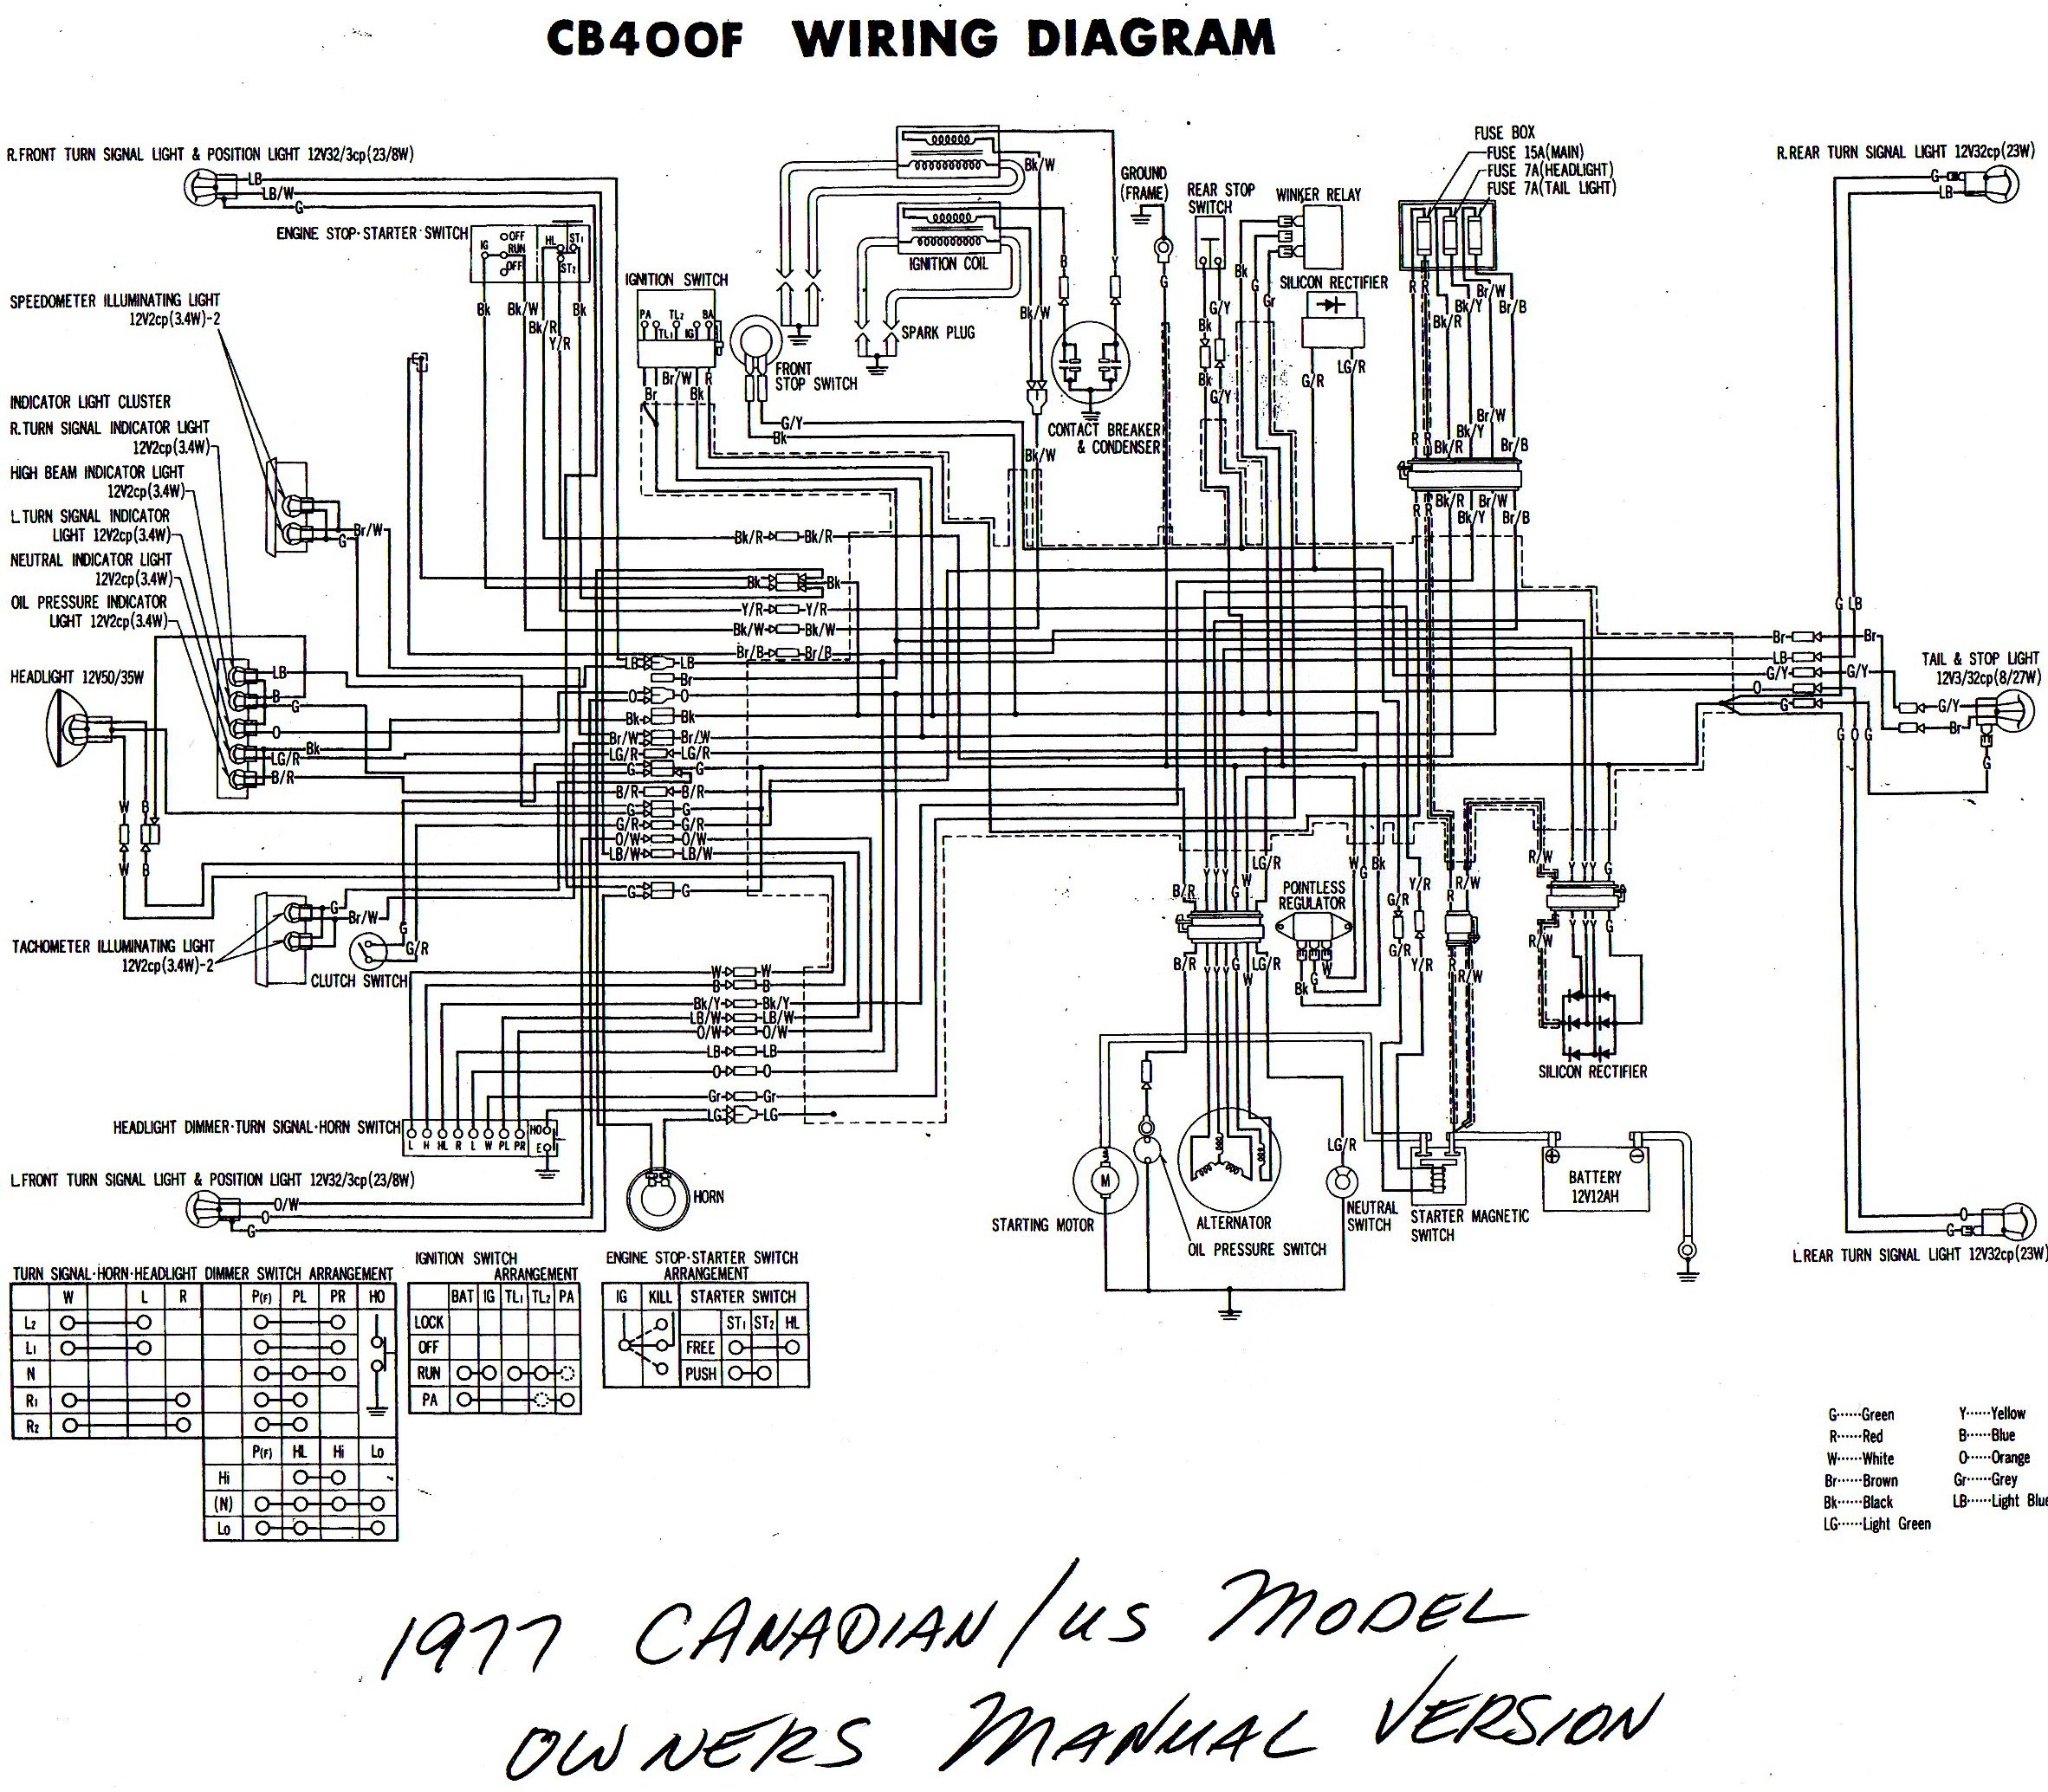 cb400f rh manuals sohc4 net Residential Electrical Wiring Diagrams Simple Wiring Diagrams